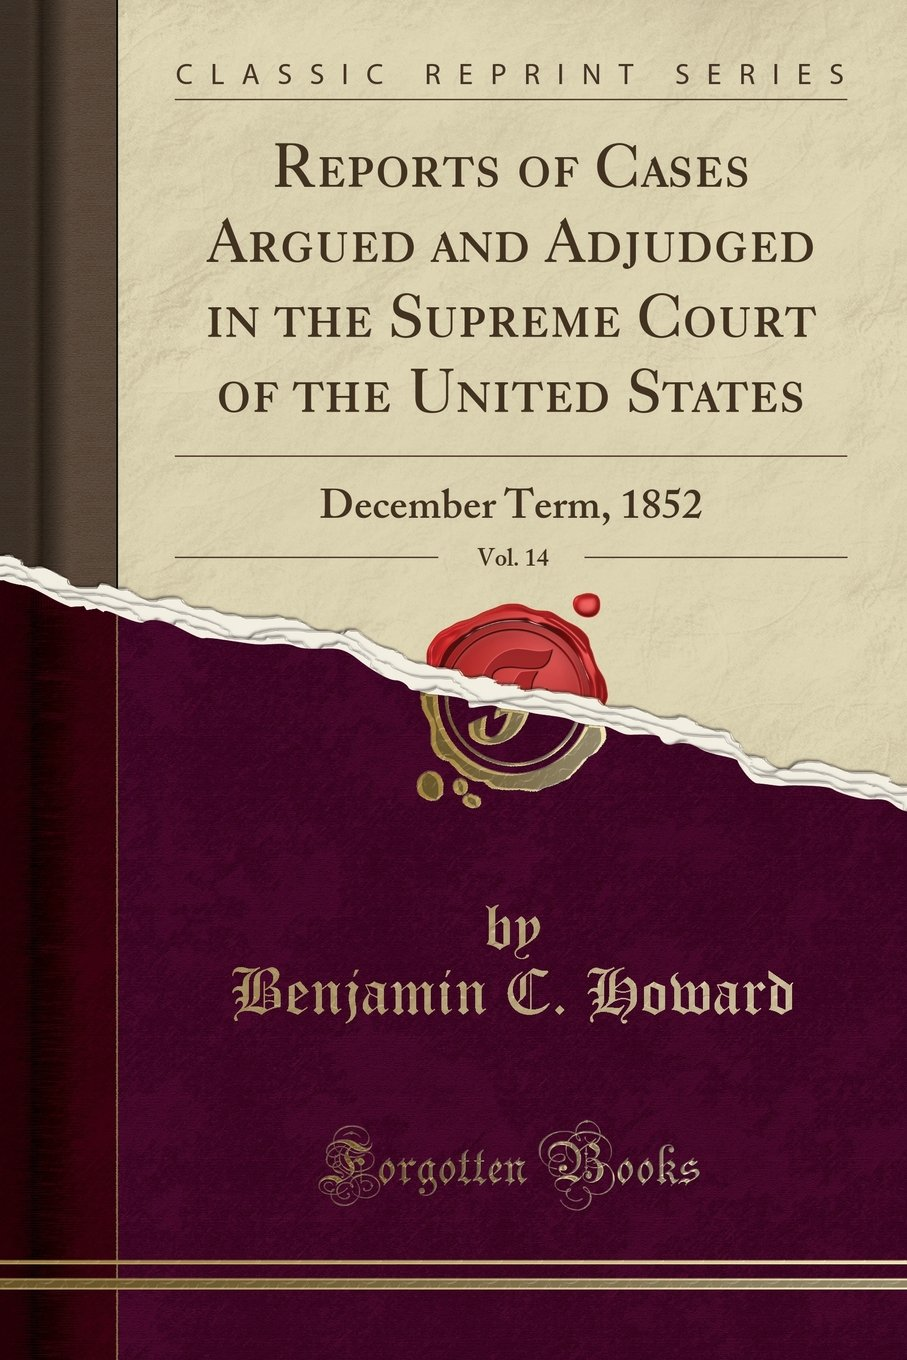 Download Reports of Cases Argued and Adjudged in the Supreme Court of the United States, Vol. 14: December Term, 1852 (Classic Reprint) ePub fb2 ebook